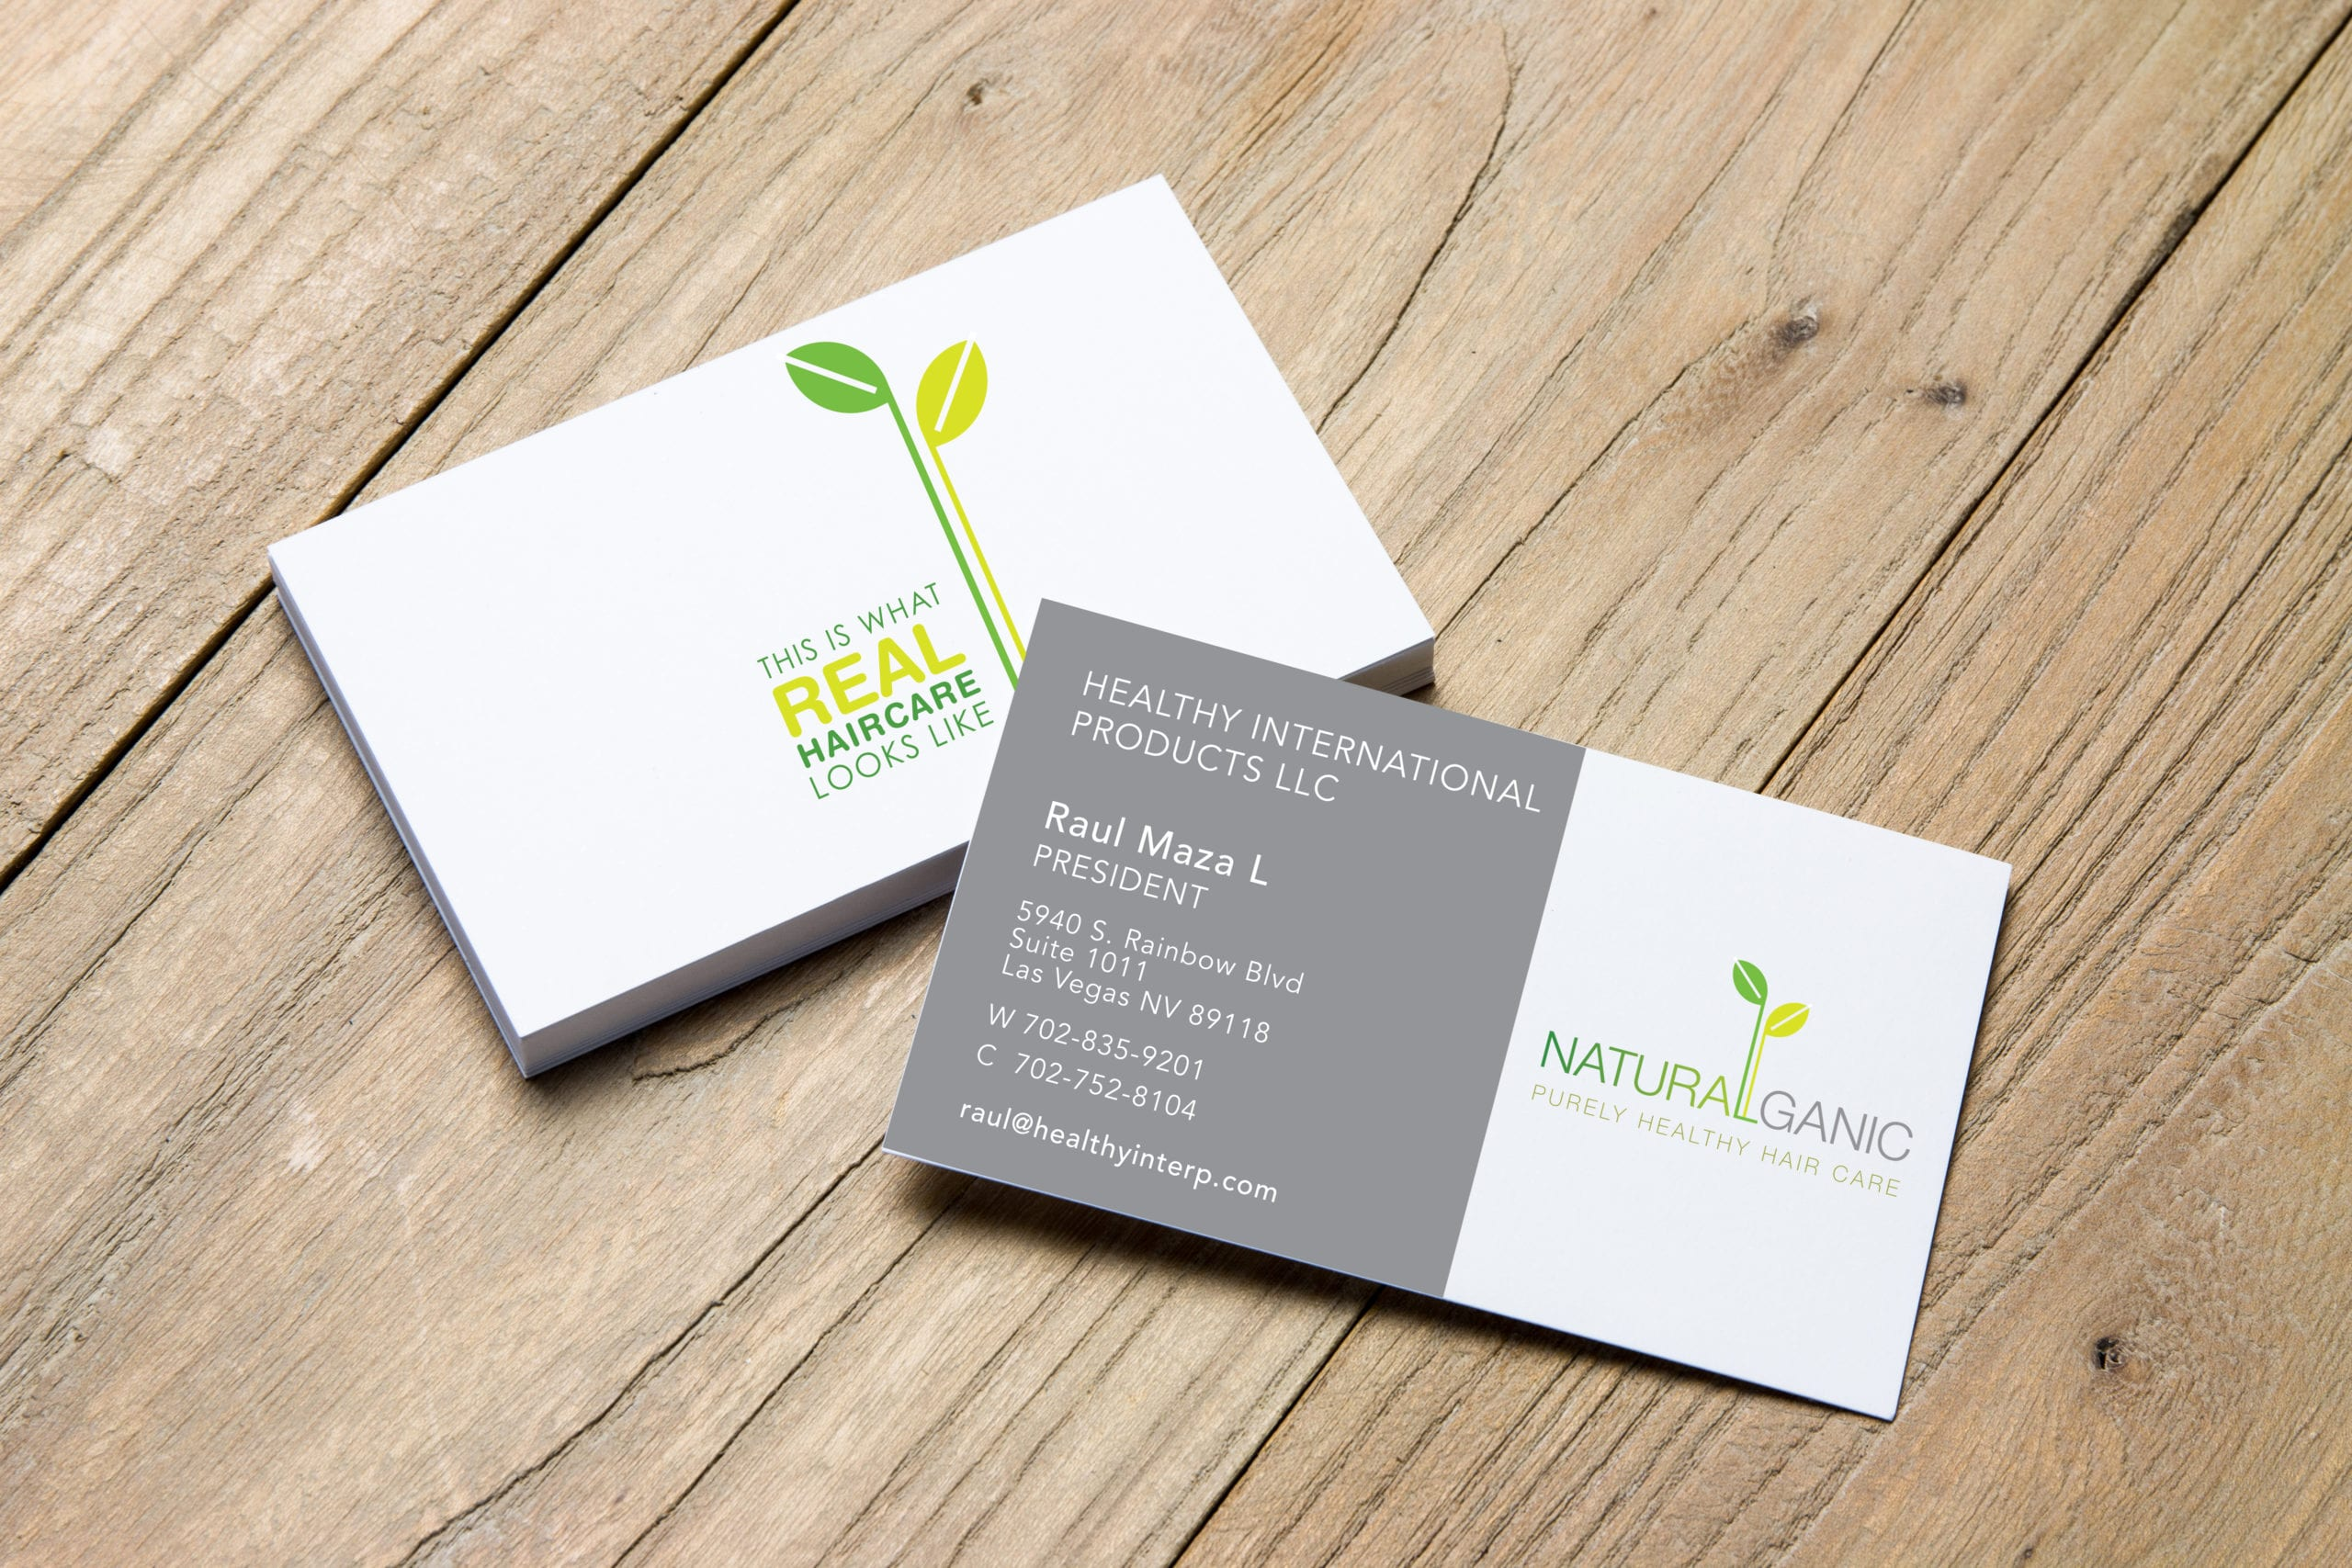 Naturalganics business cards